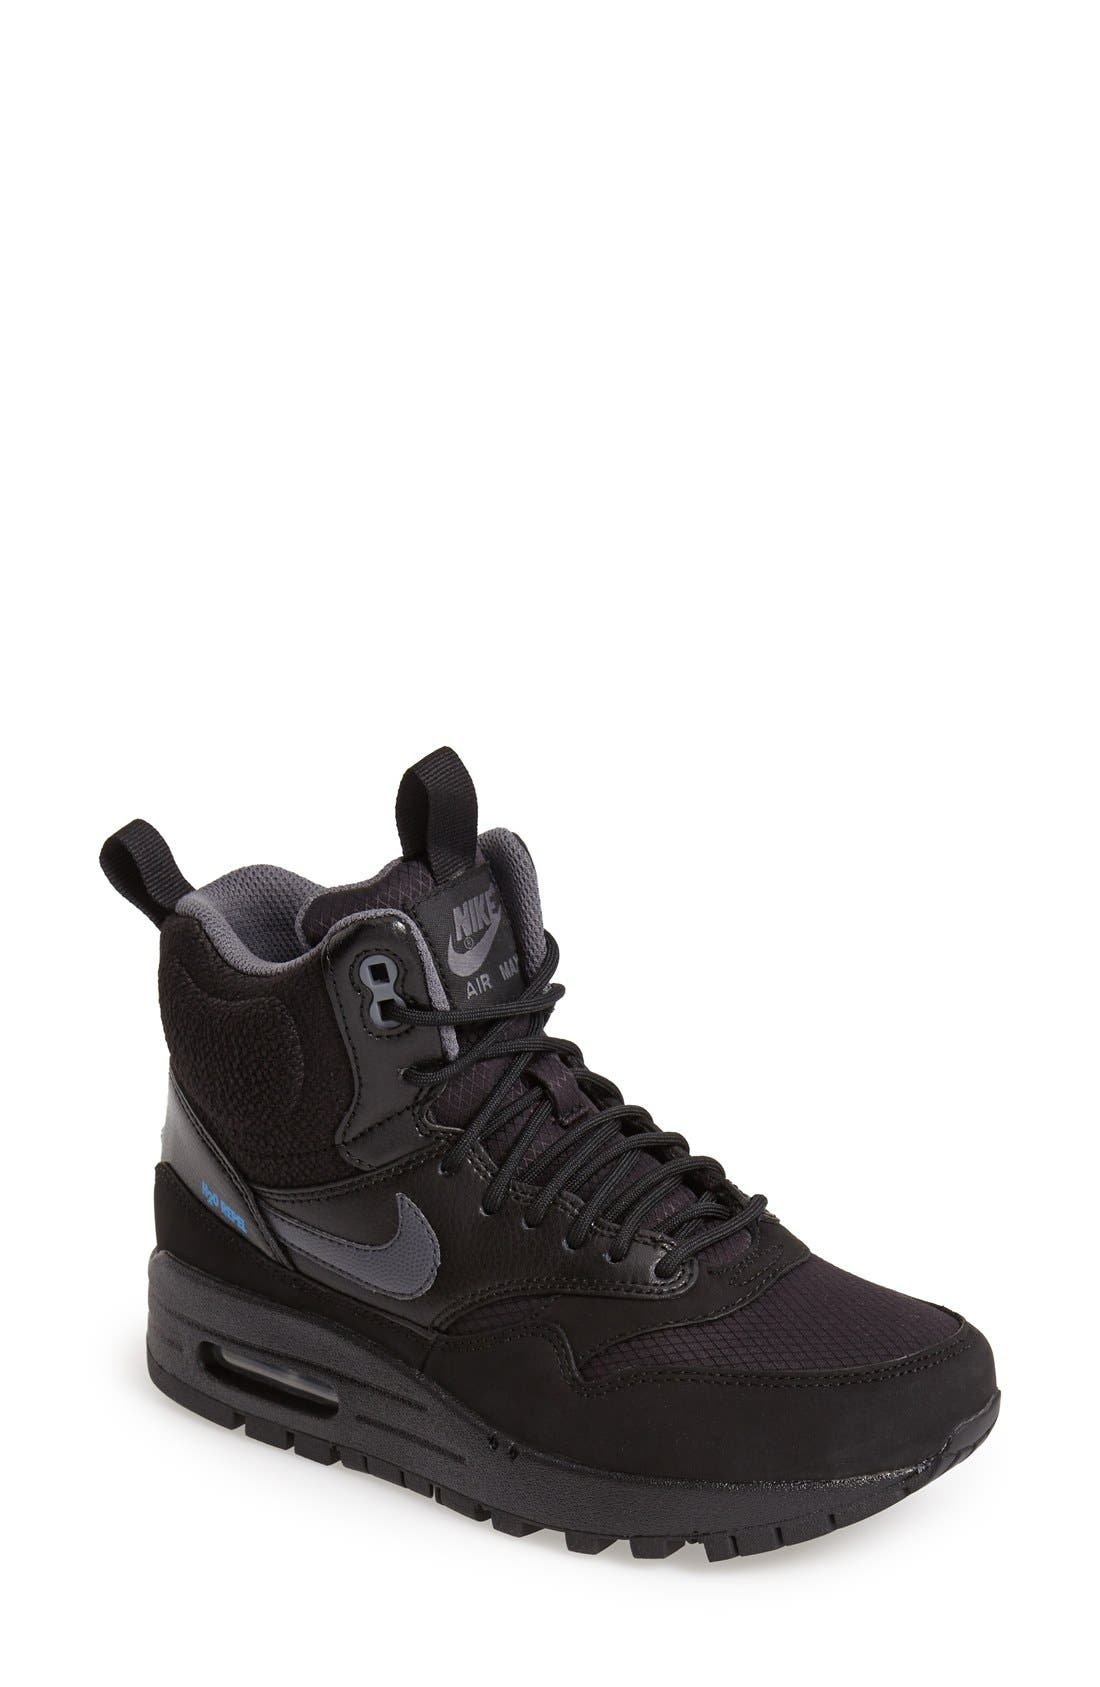 where to buy nike air max 1 mid sneakerboot girl a8474 8fec9